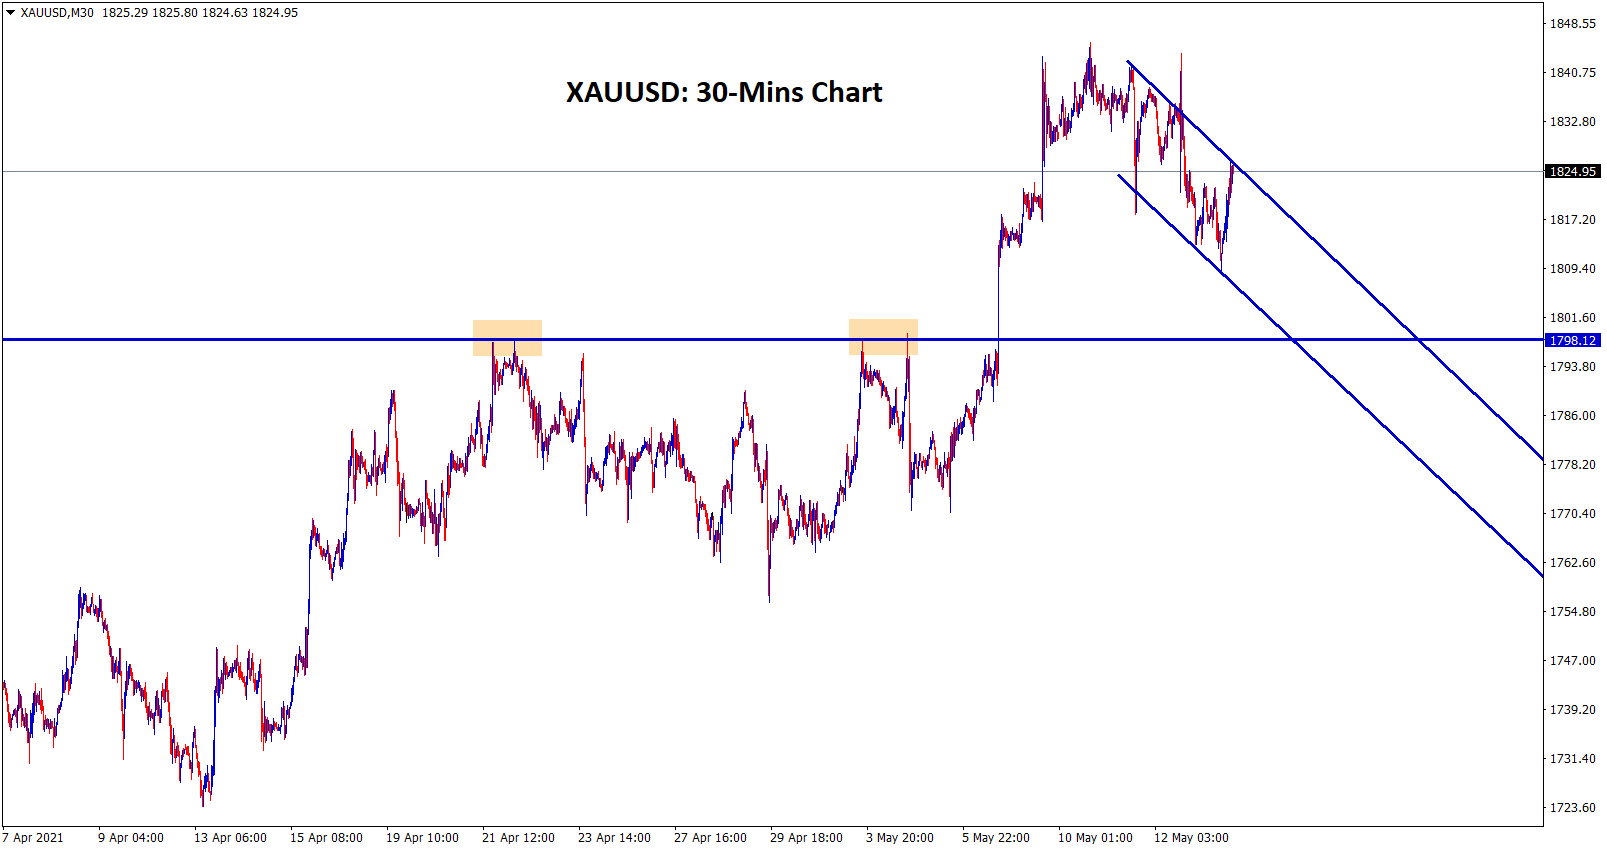 Gold moving in a desending channel heading towards retest zone of the broken resistance level.